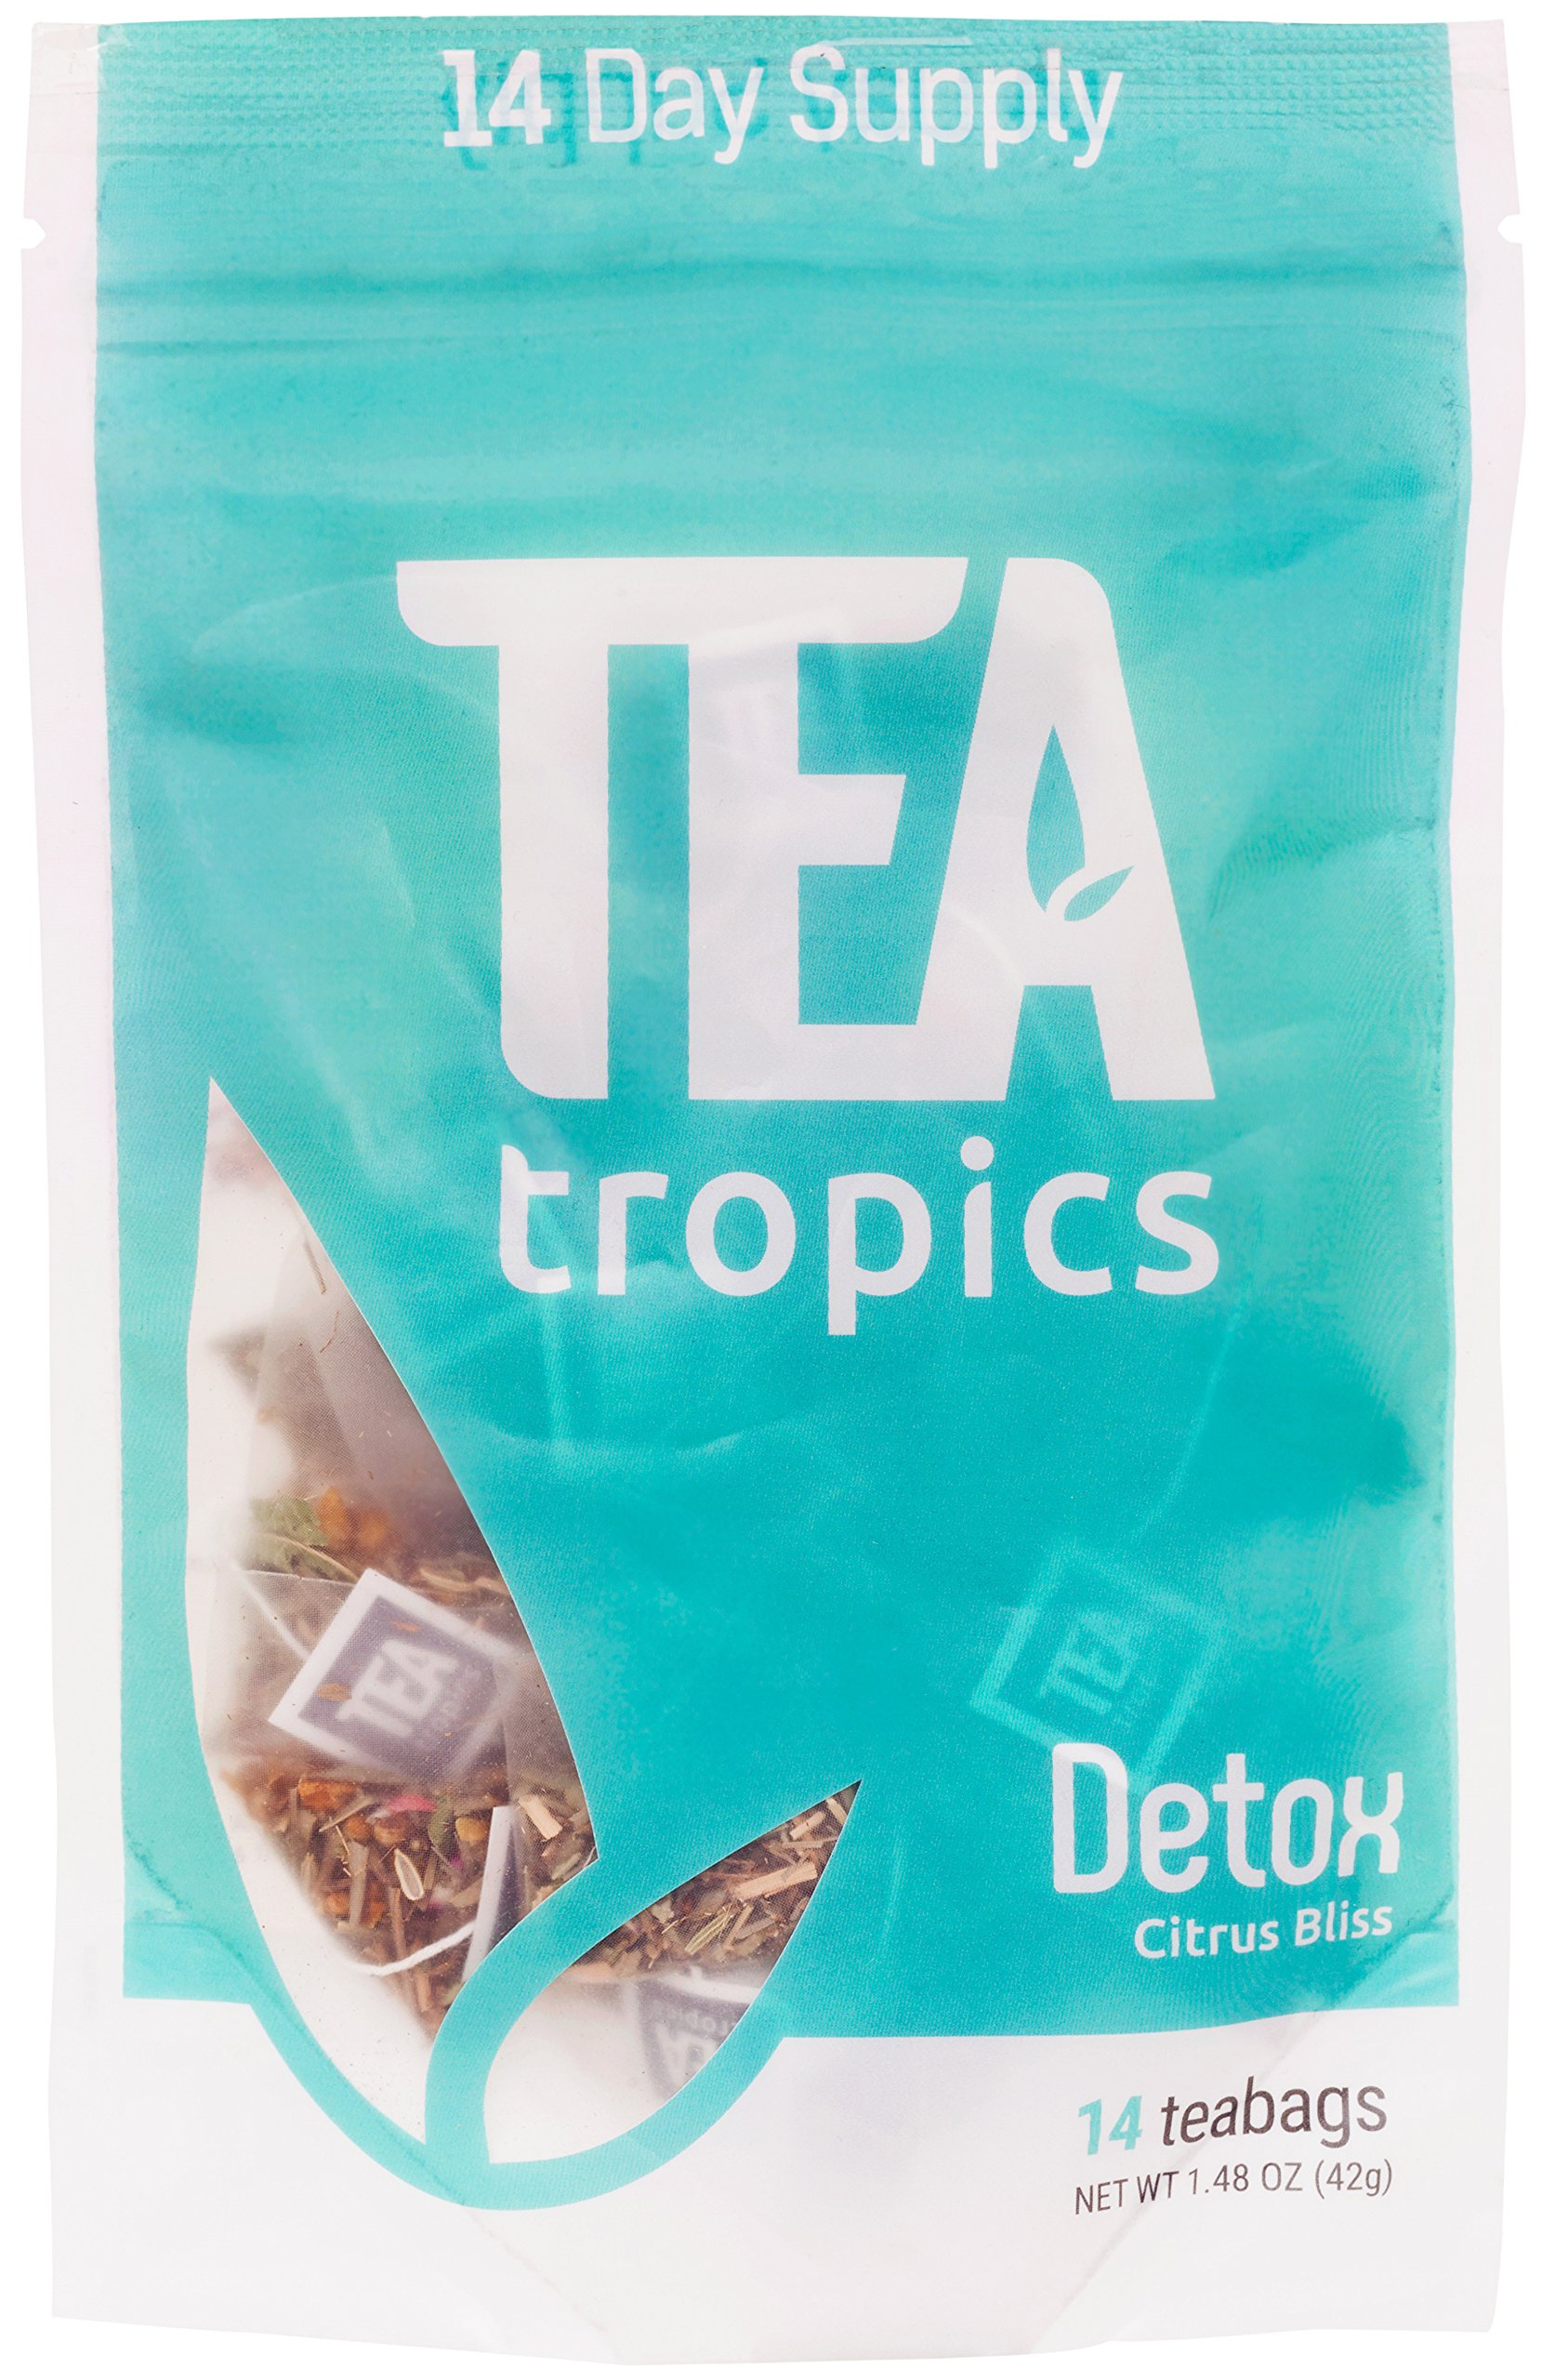 TeaTropics Full Body Detox Tea 14 Day Cleanse – Reduce Bloating, Appetite Suppressant, Natural, Powerful Weight Loss, Pyramid Tea Bags with Great Citrus Taste Caffeine Free Brew Hot or Iced Teatox